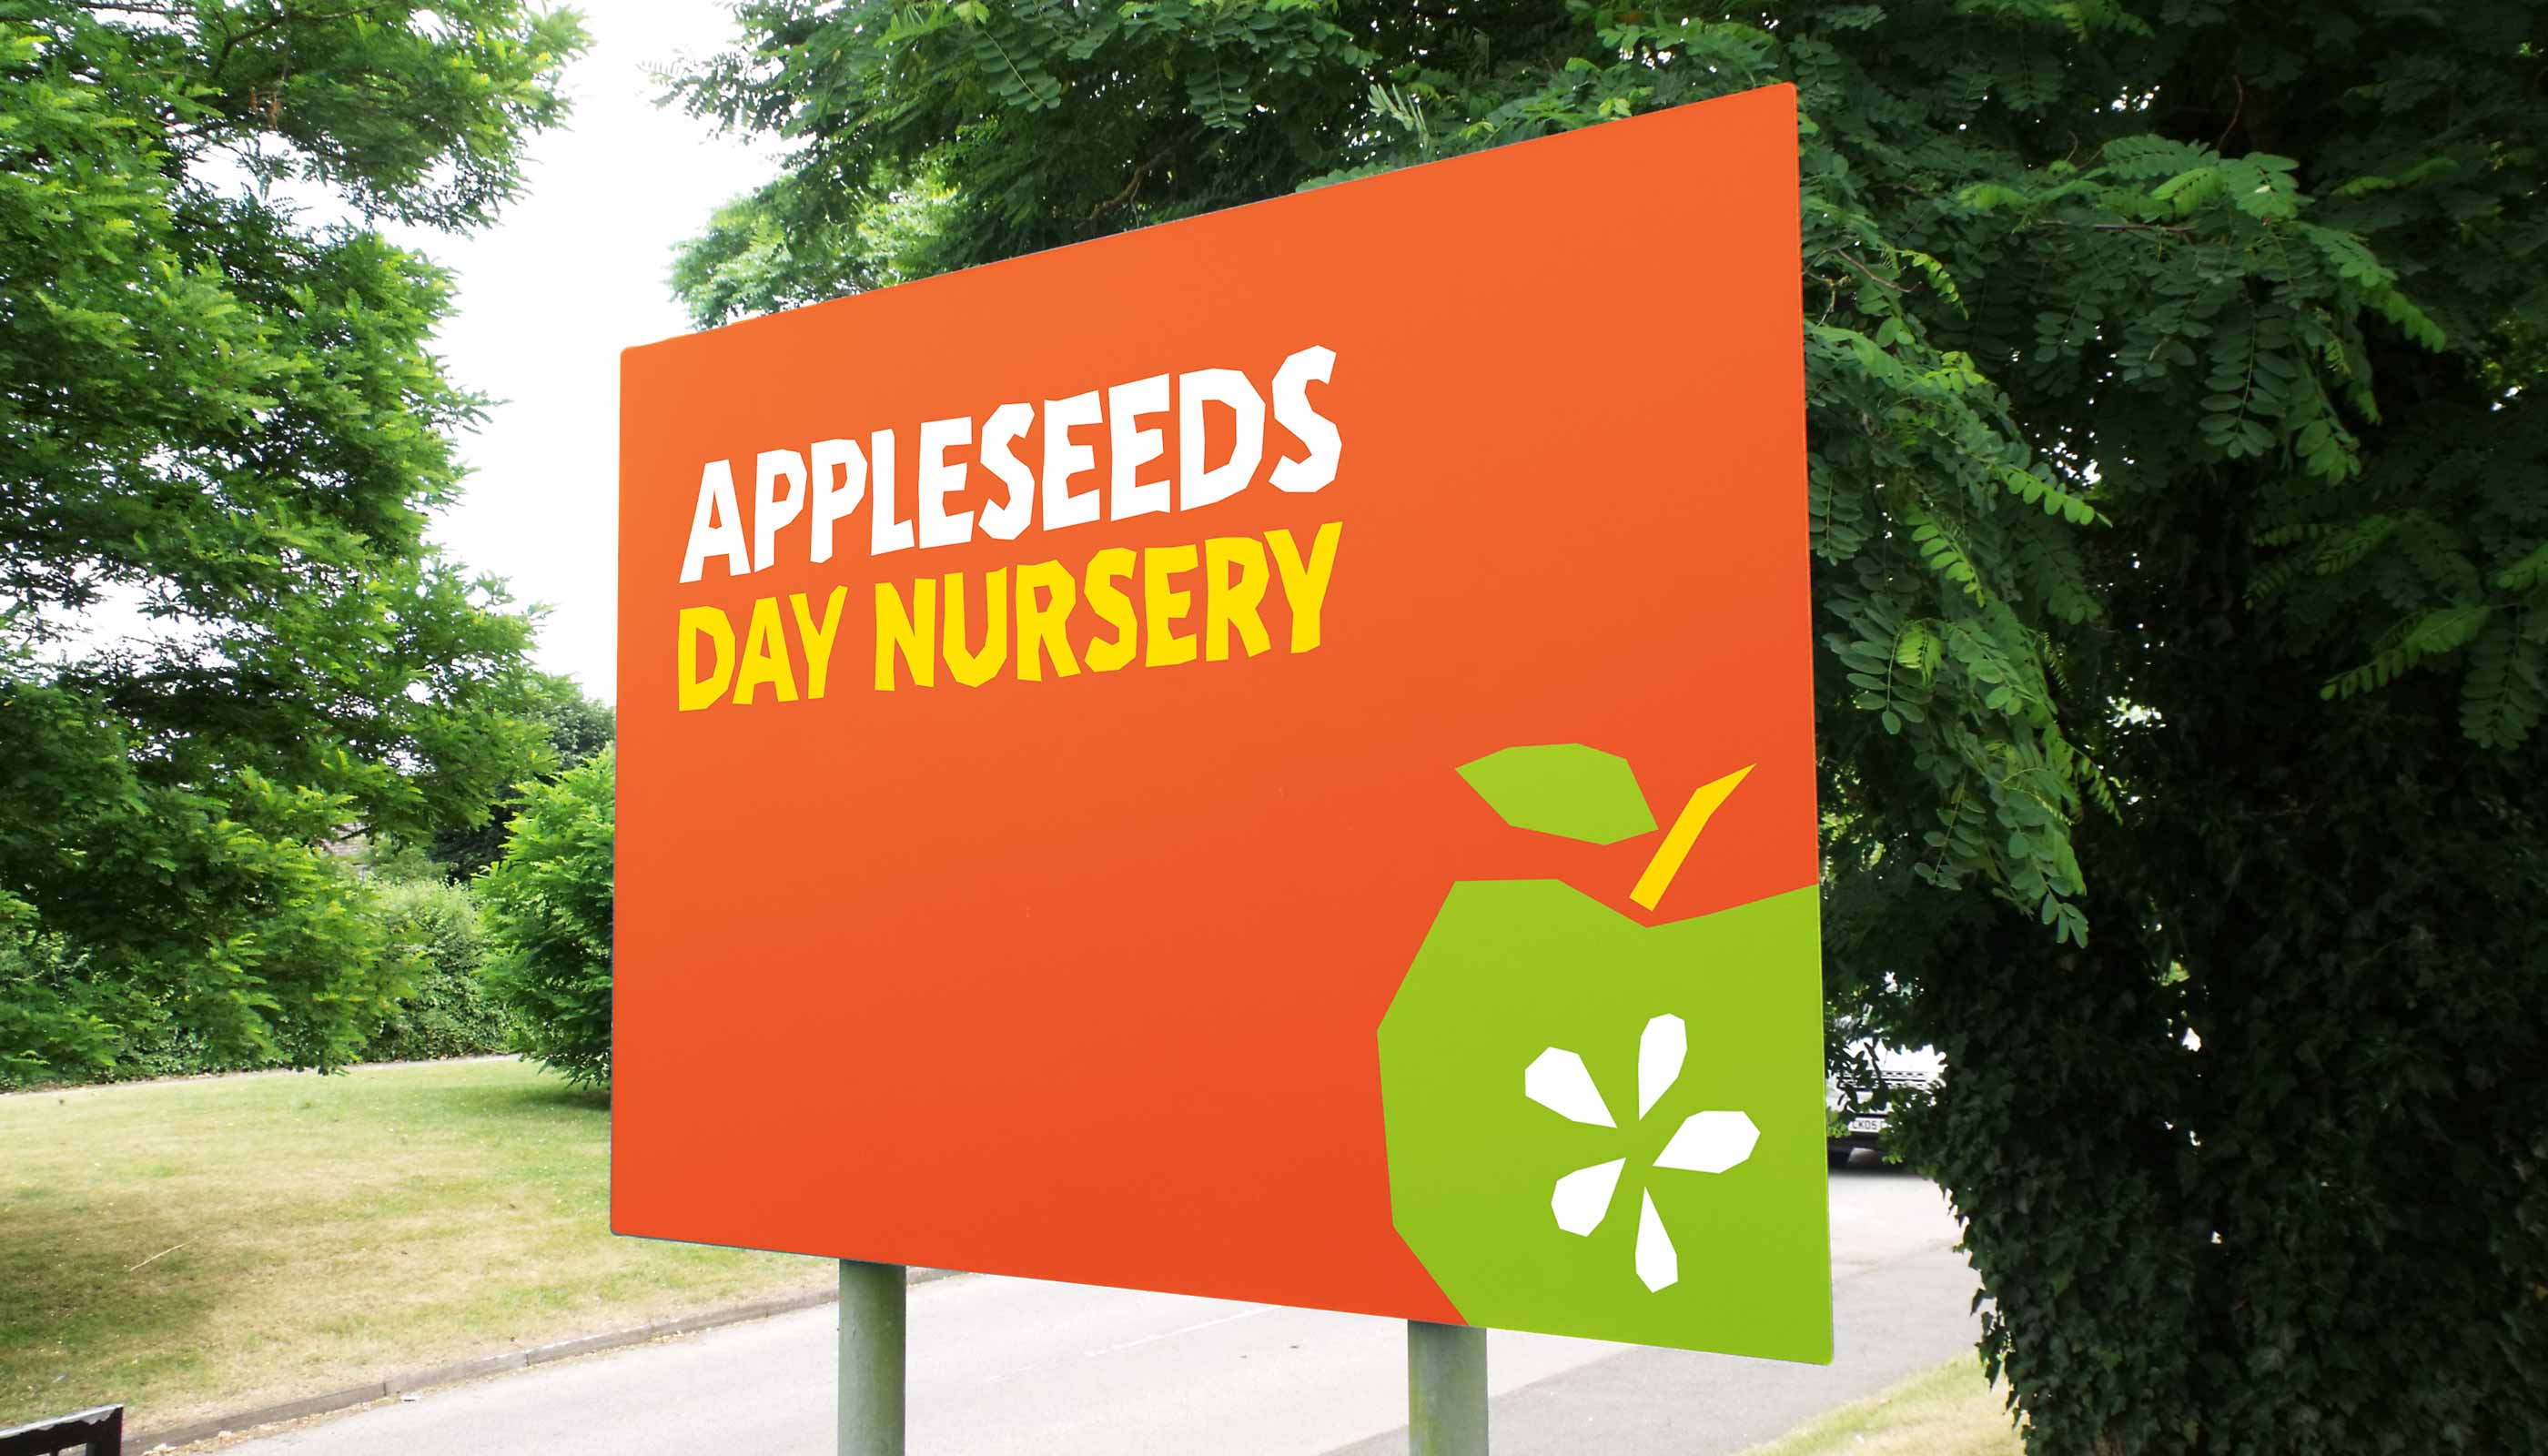 Proposed signage design for Appleseeds Day Nursery in Ipswich, Suffolk.